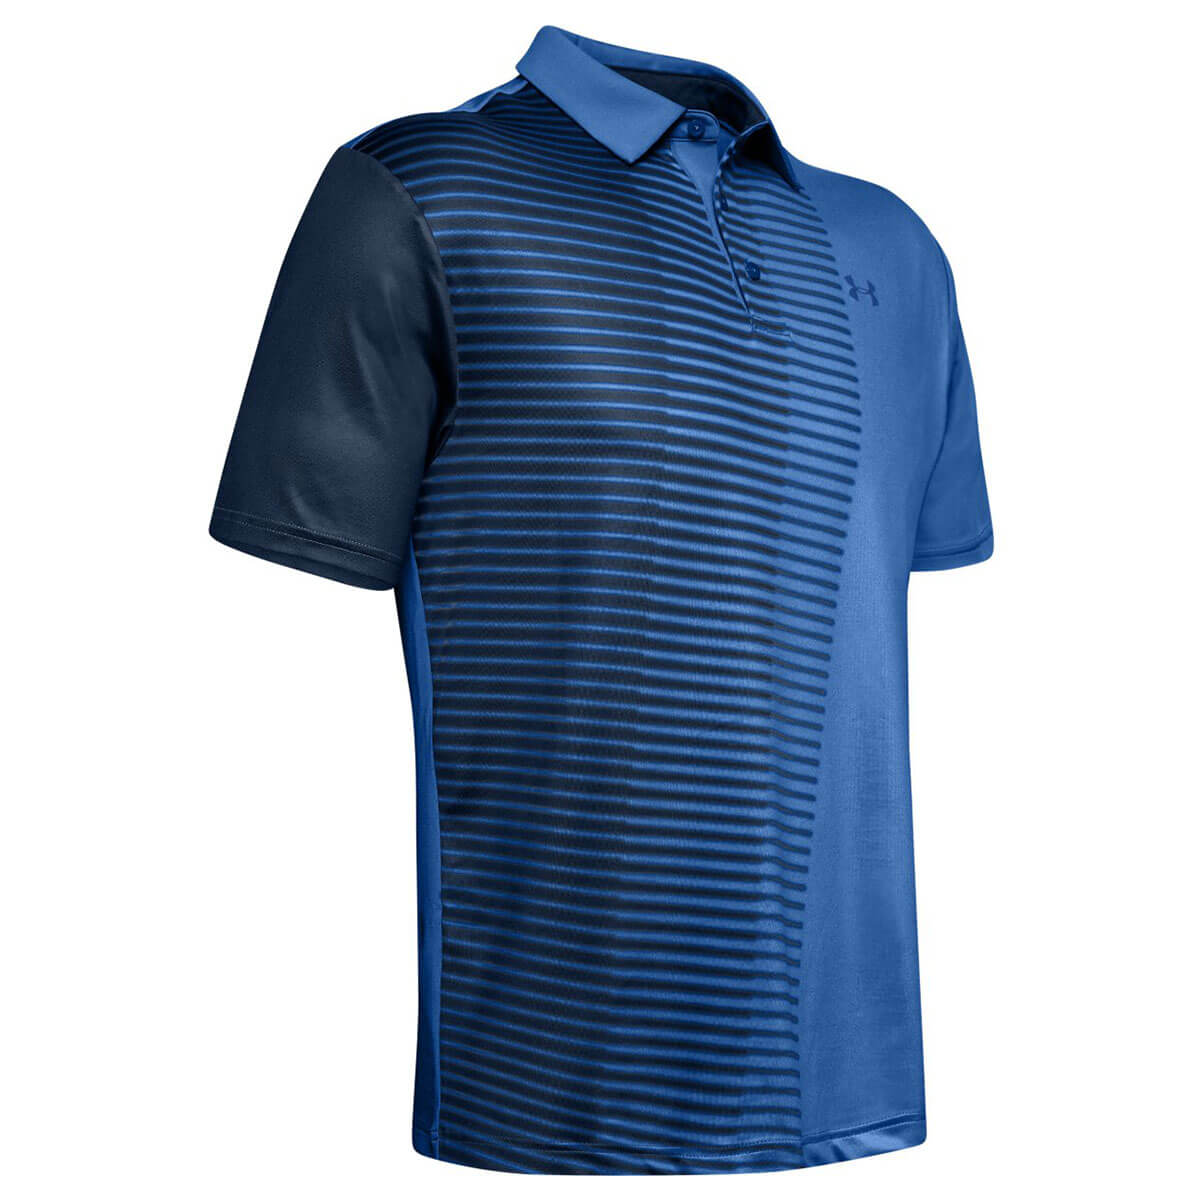 Under-Armour-Mens-2019-Playoff-Polo-2-0-Breathable-Light-Stretch-Polo-Shirt thumbnail 122